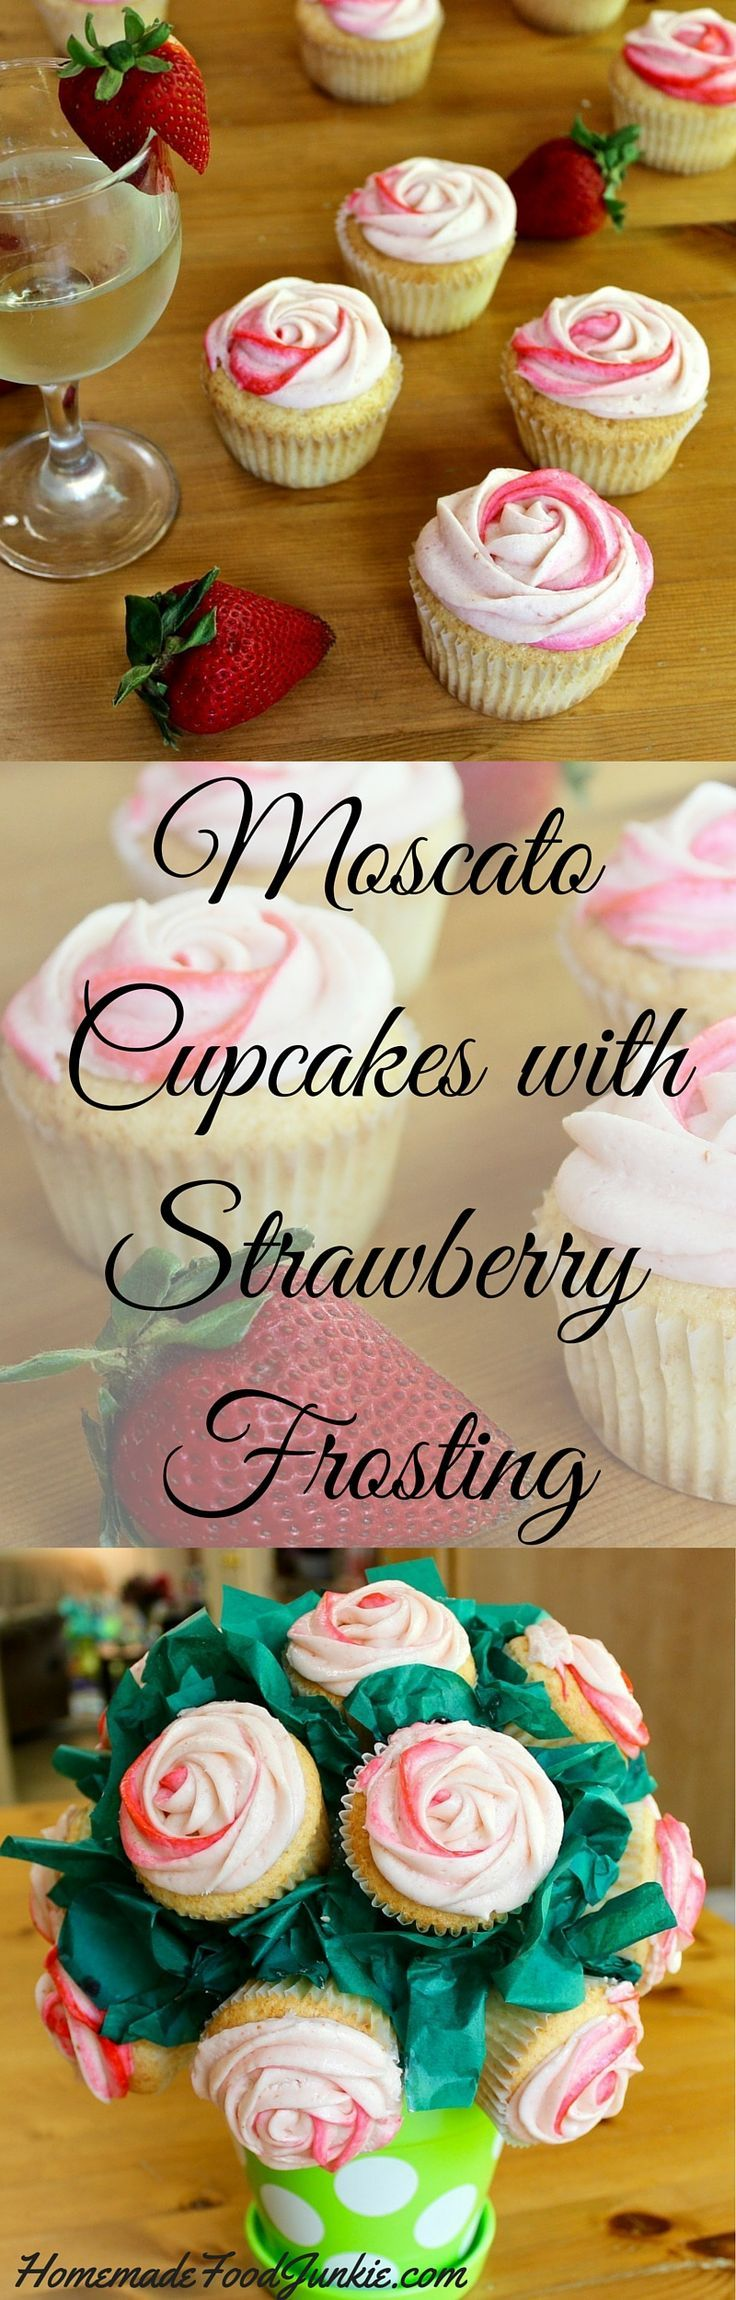 Moscato Cupcakes With Strawberry Frosting This Post Has A Video Showing How  To Decorate These